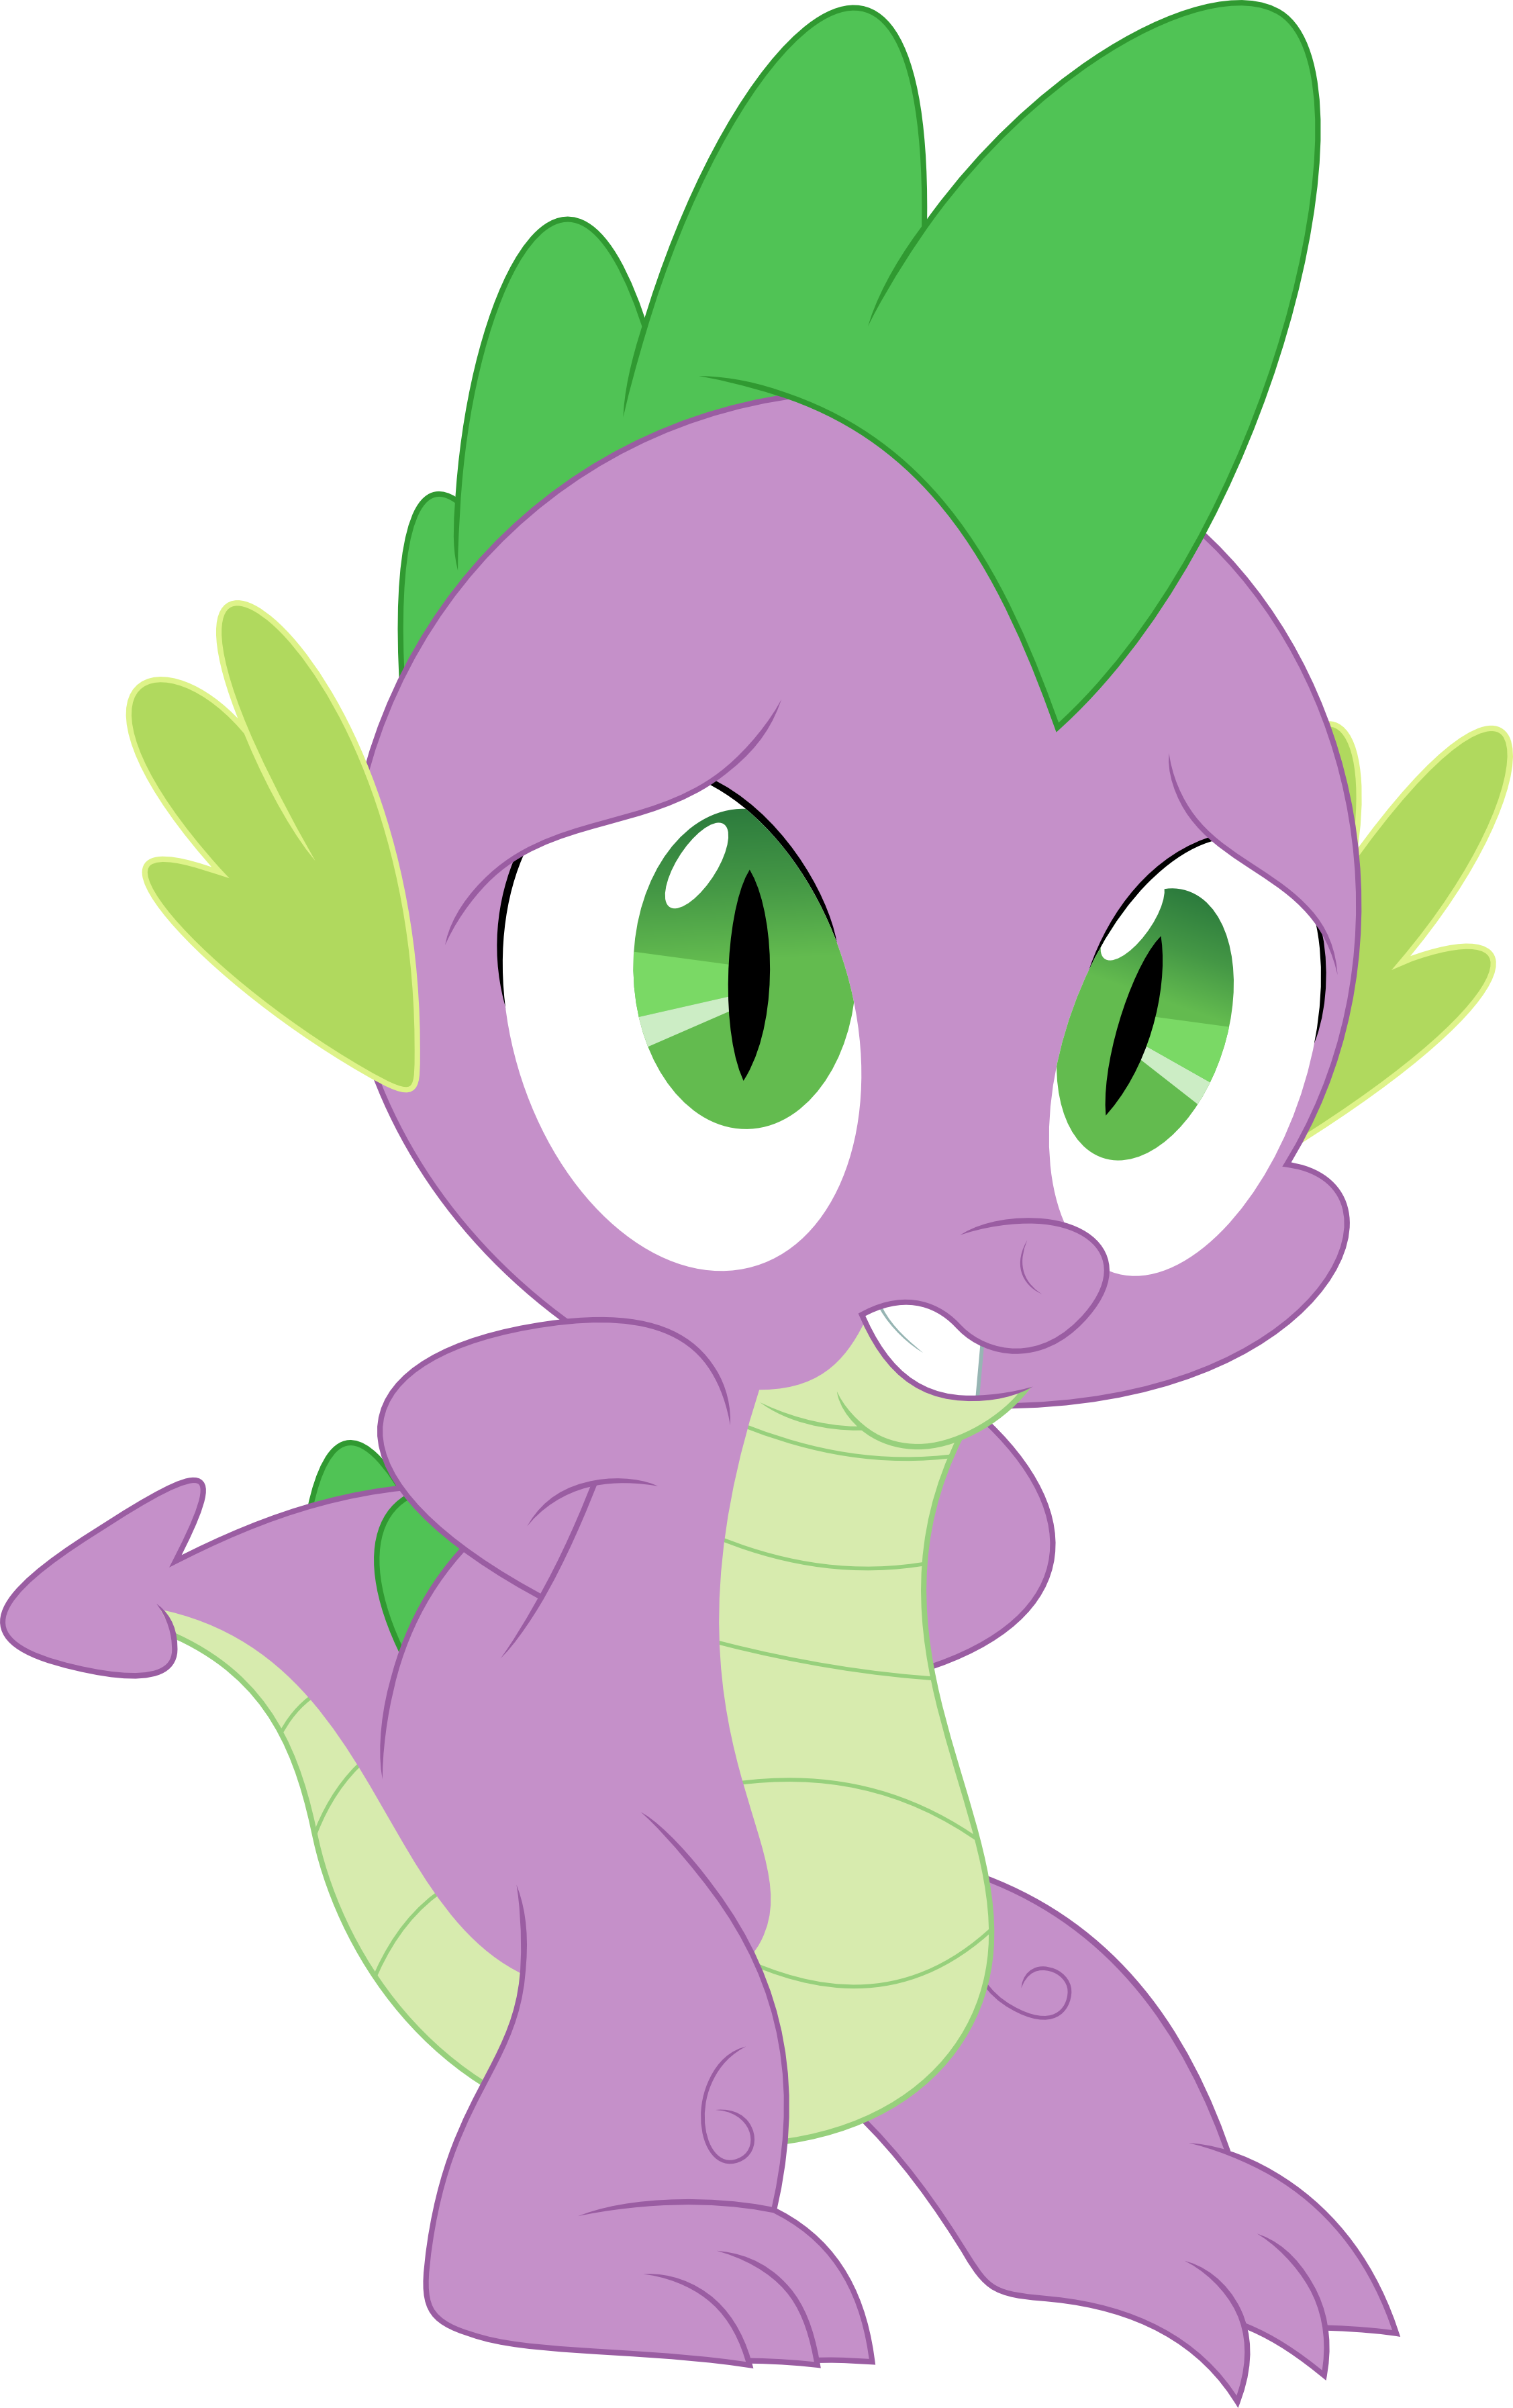 Aw gee, im embarrassed now (Shelldon) by Porygon2z on